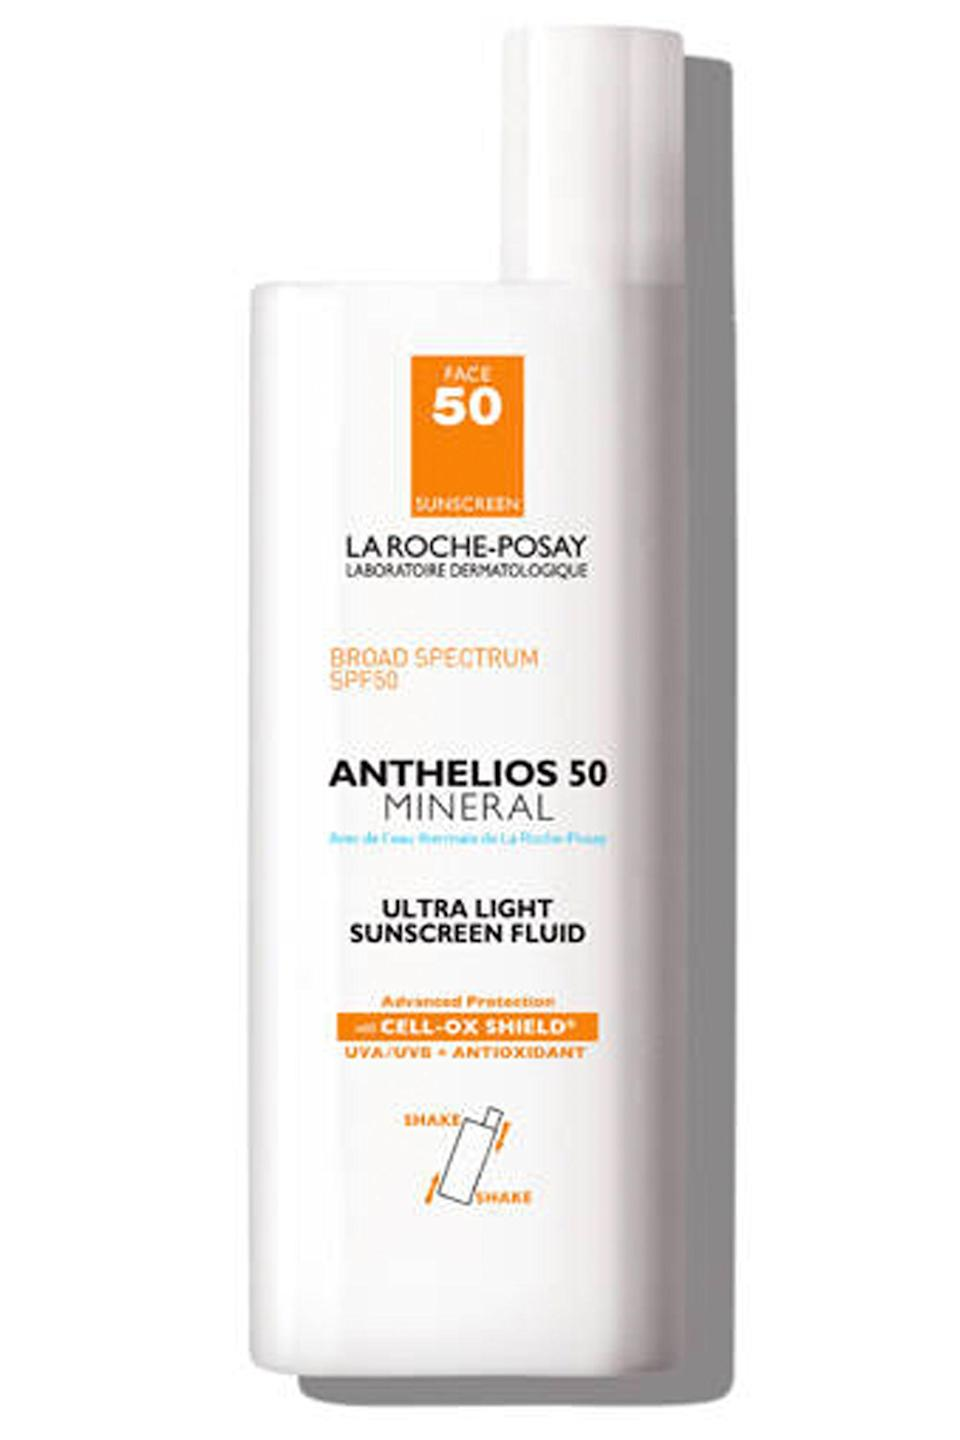 """<p><strong>La Roche-Posay</strong></p><p>ulta.com</p><p><strong>$33.50</strong></p><p><a href=""""https://go.redirectingat.com?id=74968X1596630&url=https%3A%2F%2Fwww.ulta.com%2Fanthelios-50-mineral-ultra-light-sunscreen-fluid-spf-50%3FproductId%3DxlsImpprod3840051&sref=https%3A%2F%2Fwww.townandcountrymag.com%2Fstyle%2Fbeauty-products%2Fg27889502%2Fbest-face-sunscreen%2F"""" rel=""""nofollow noopener"""" target=""""_blank"""" data-ylk=""""slk:Shop Now"""" class=""""link rapid-noclick-resp"""">Shop Now</a></p><p>A hard-working formula that blocks UVA and UVB with titanium dioxide and zinc oxide while also battling free-radical damage with a potent antioxidant complex. Best of all, it feels utterly weightless on skin, absorbing easily and undetectably.</p>"""